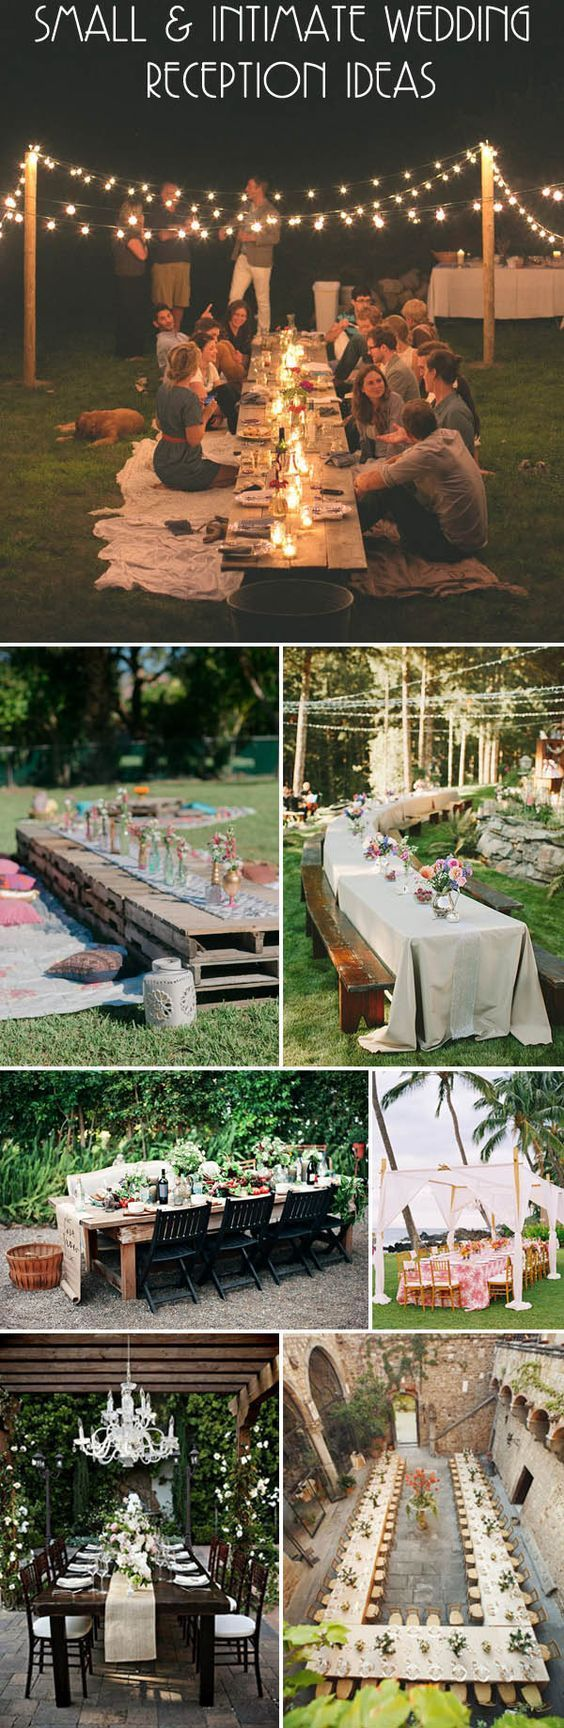 small intimate weddings southern california%0A Intimate Wedding Ideas  Five Essential Elements That Bring Your Guests  Together